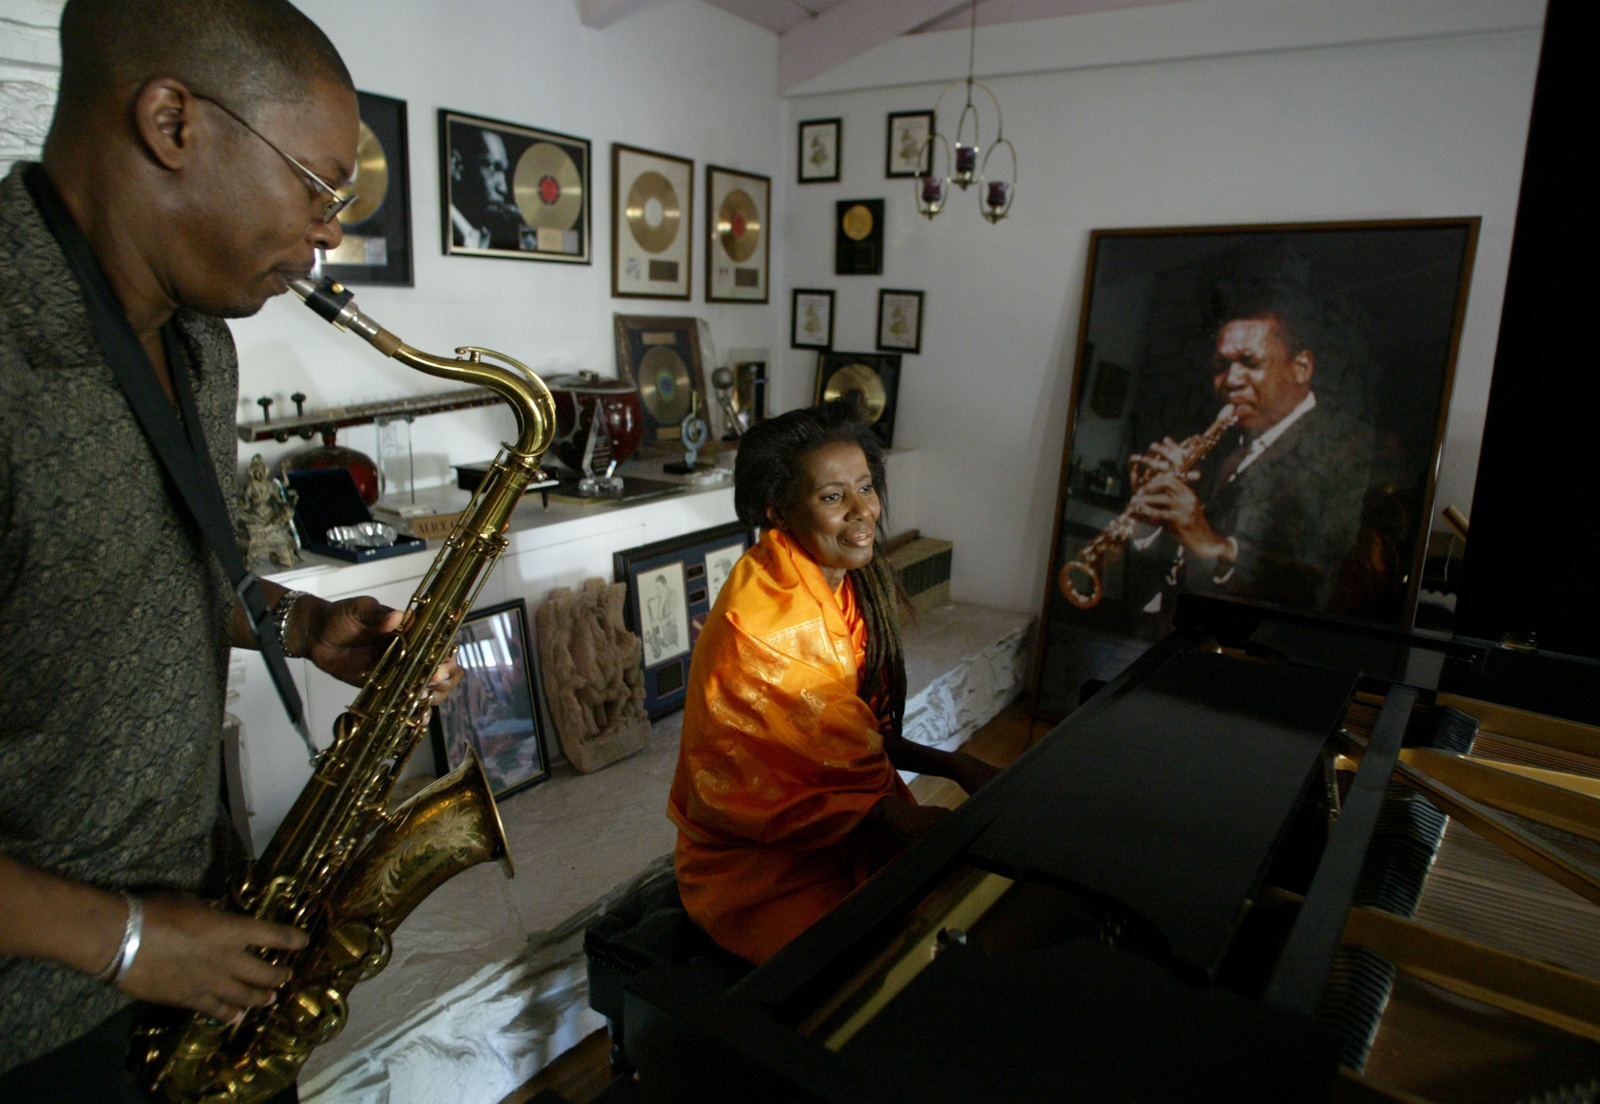 Alice Coltrane and her son Ravi with a photograph of John Coltrane, September 4, 2004